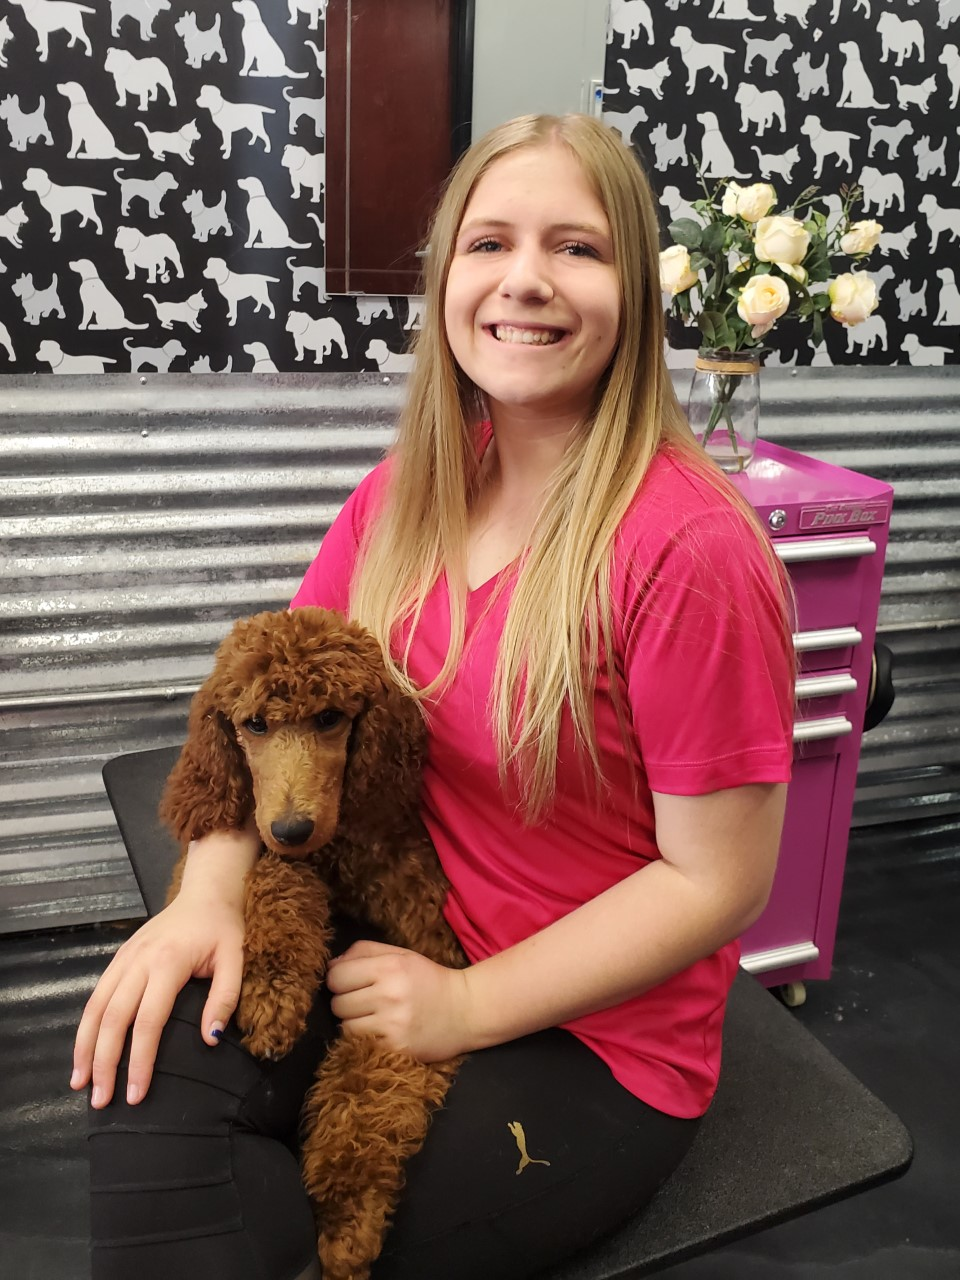 Meet Jayna!   I have been working at Shampooch Pet Styles for a little over a year now. I started out as a receptionist, but now i'm a trained bather. I am an animal lover, which makes me love my job even more. I recently graduated from Chaparral High School and am eager to keep learning more about the trade. I can't wait until I'm a fully trained pet stylist!